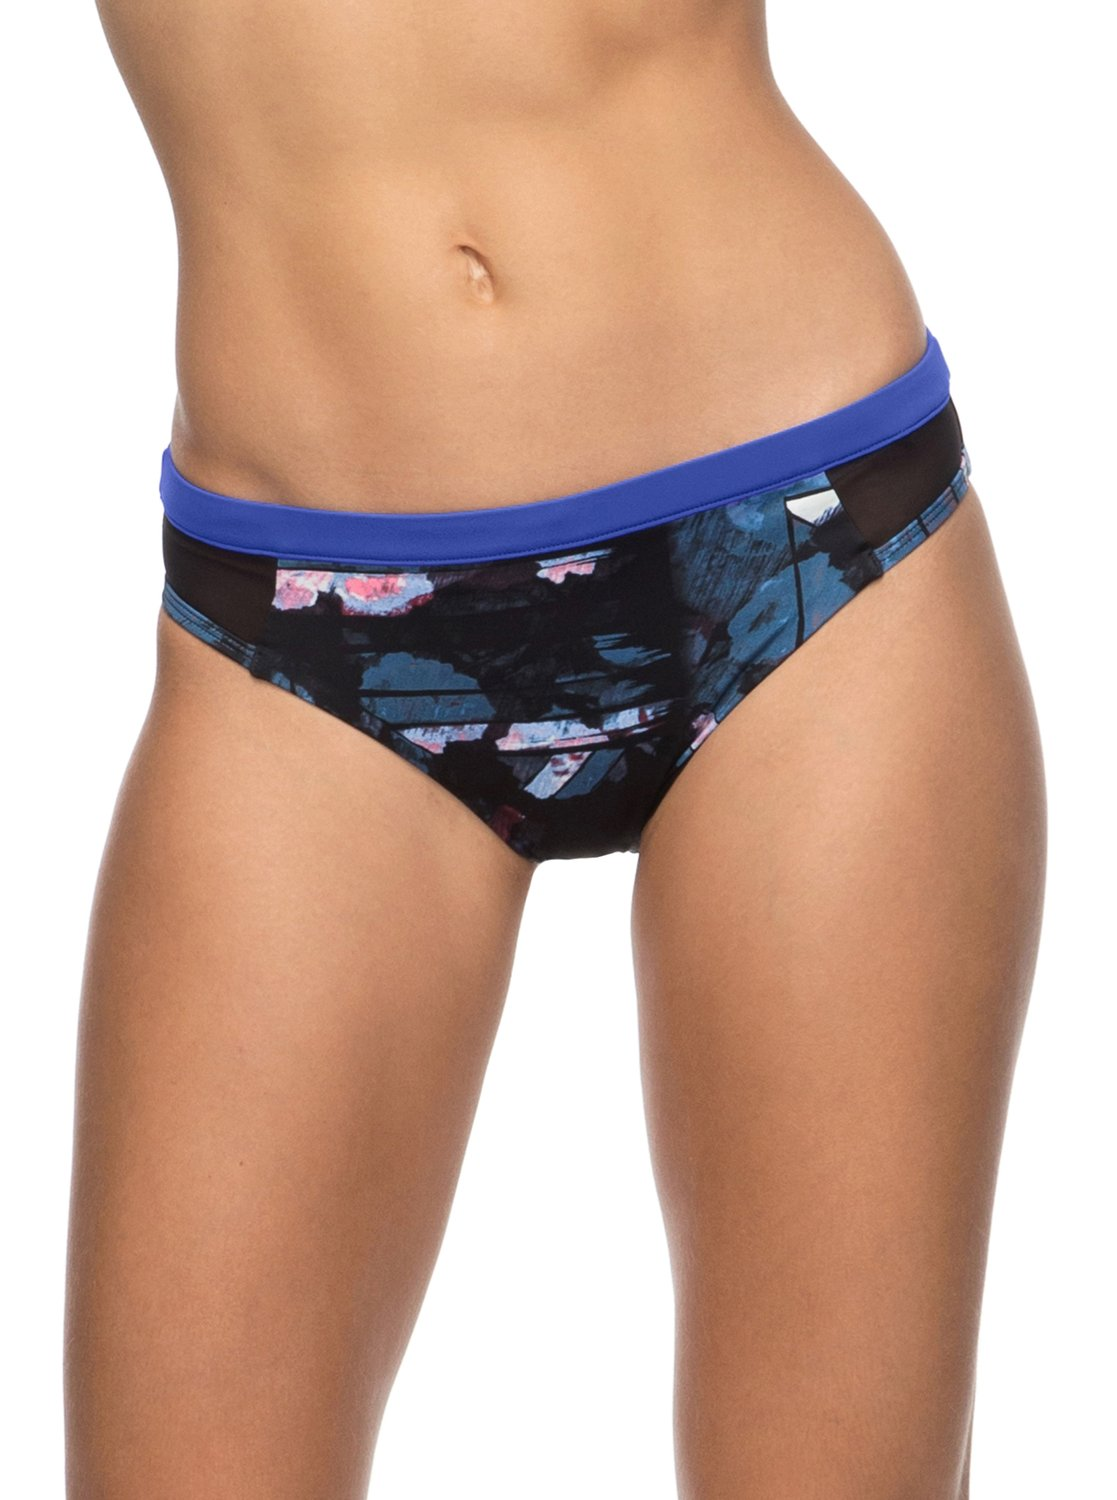 Keep It ROXY - Bas de bikini pour Femme - Roxy